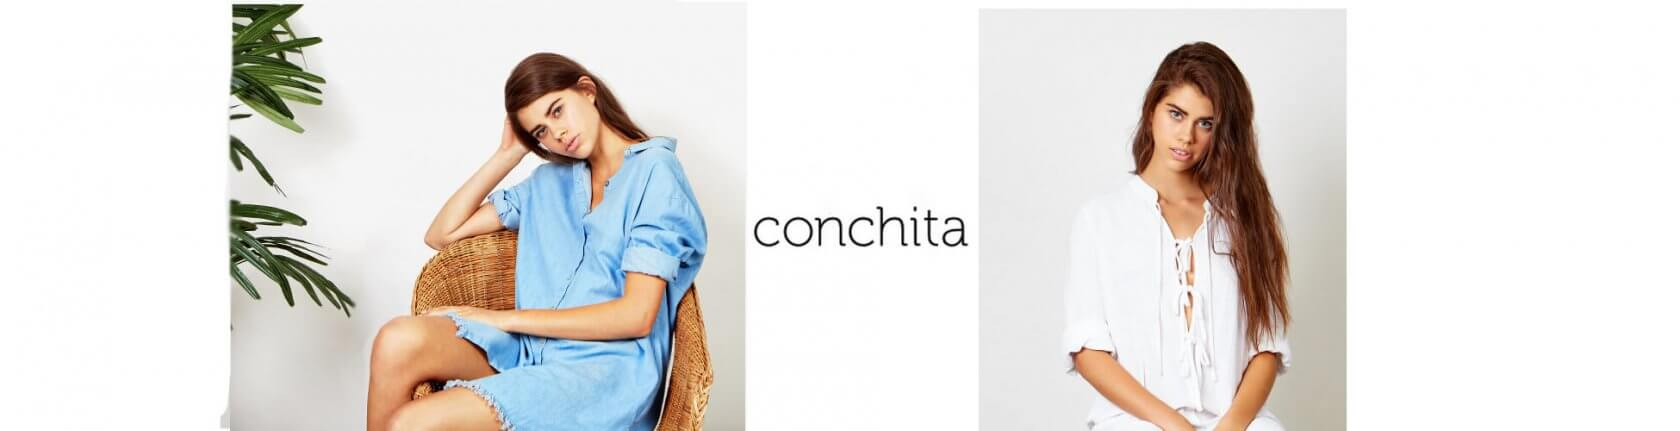 conchita-front-page